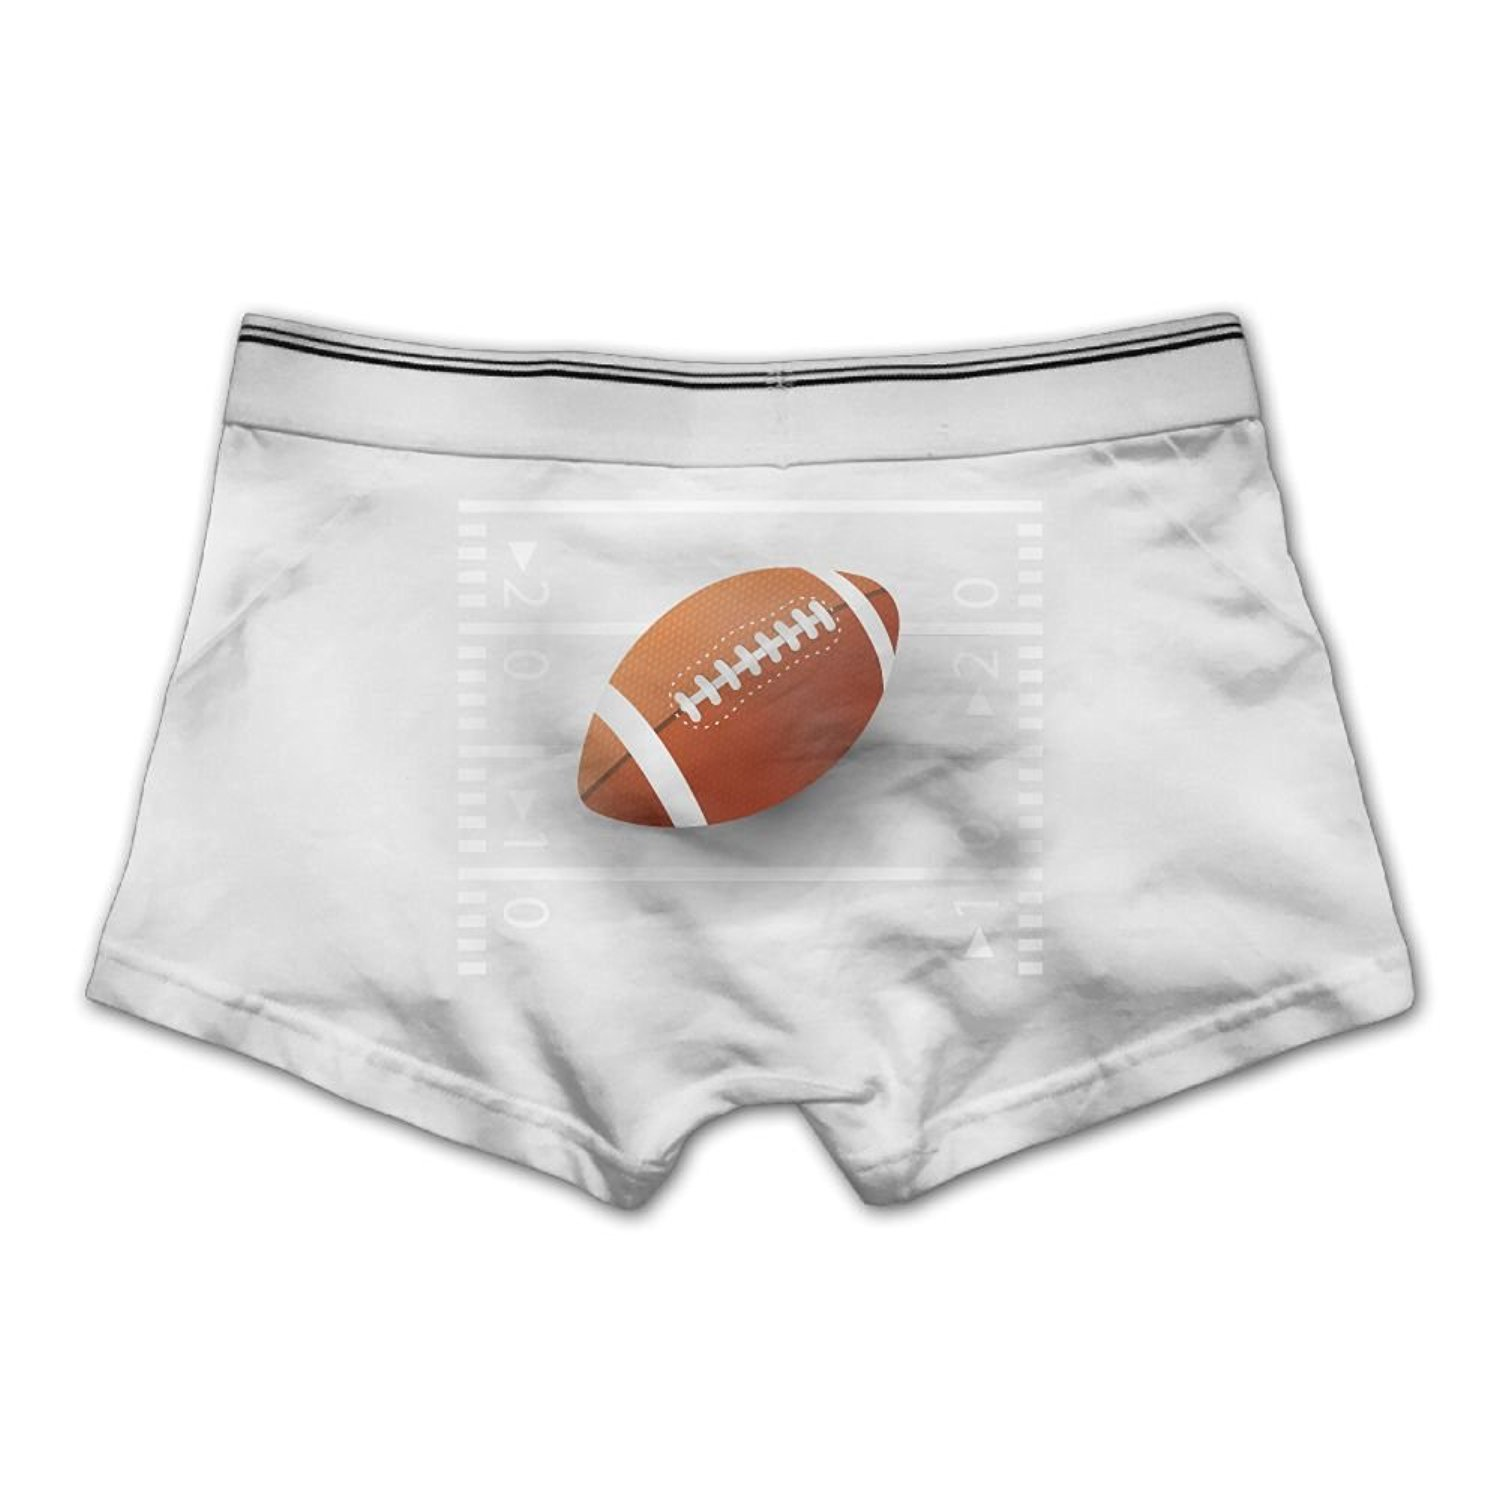 Shipshape Men's Underpants Boxer Briefs American Football Rugby Underwear Low Waist Cotton No Trace